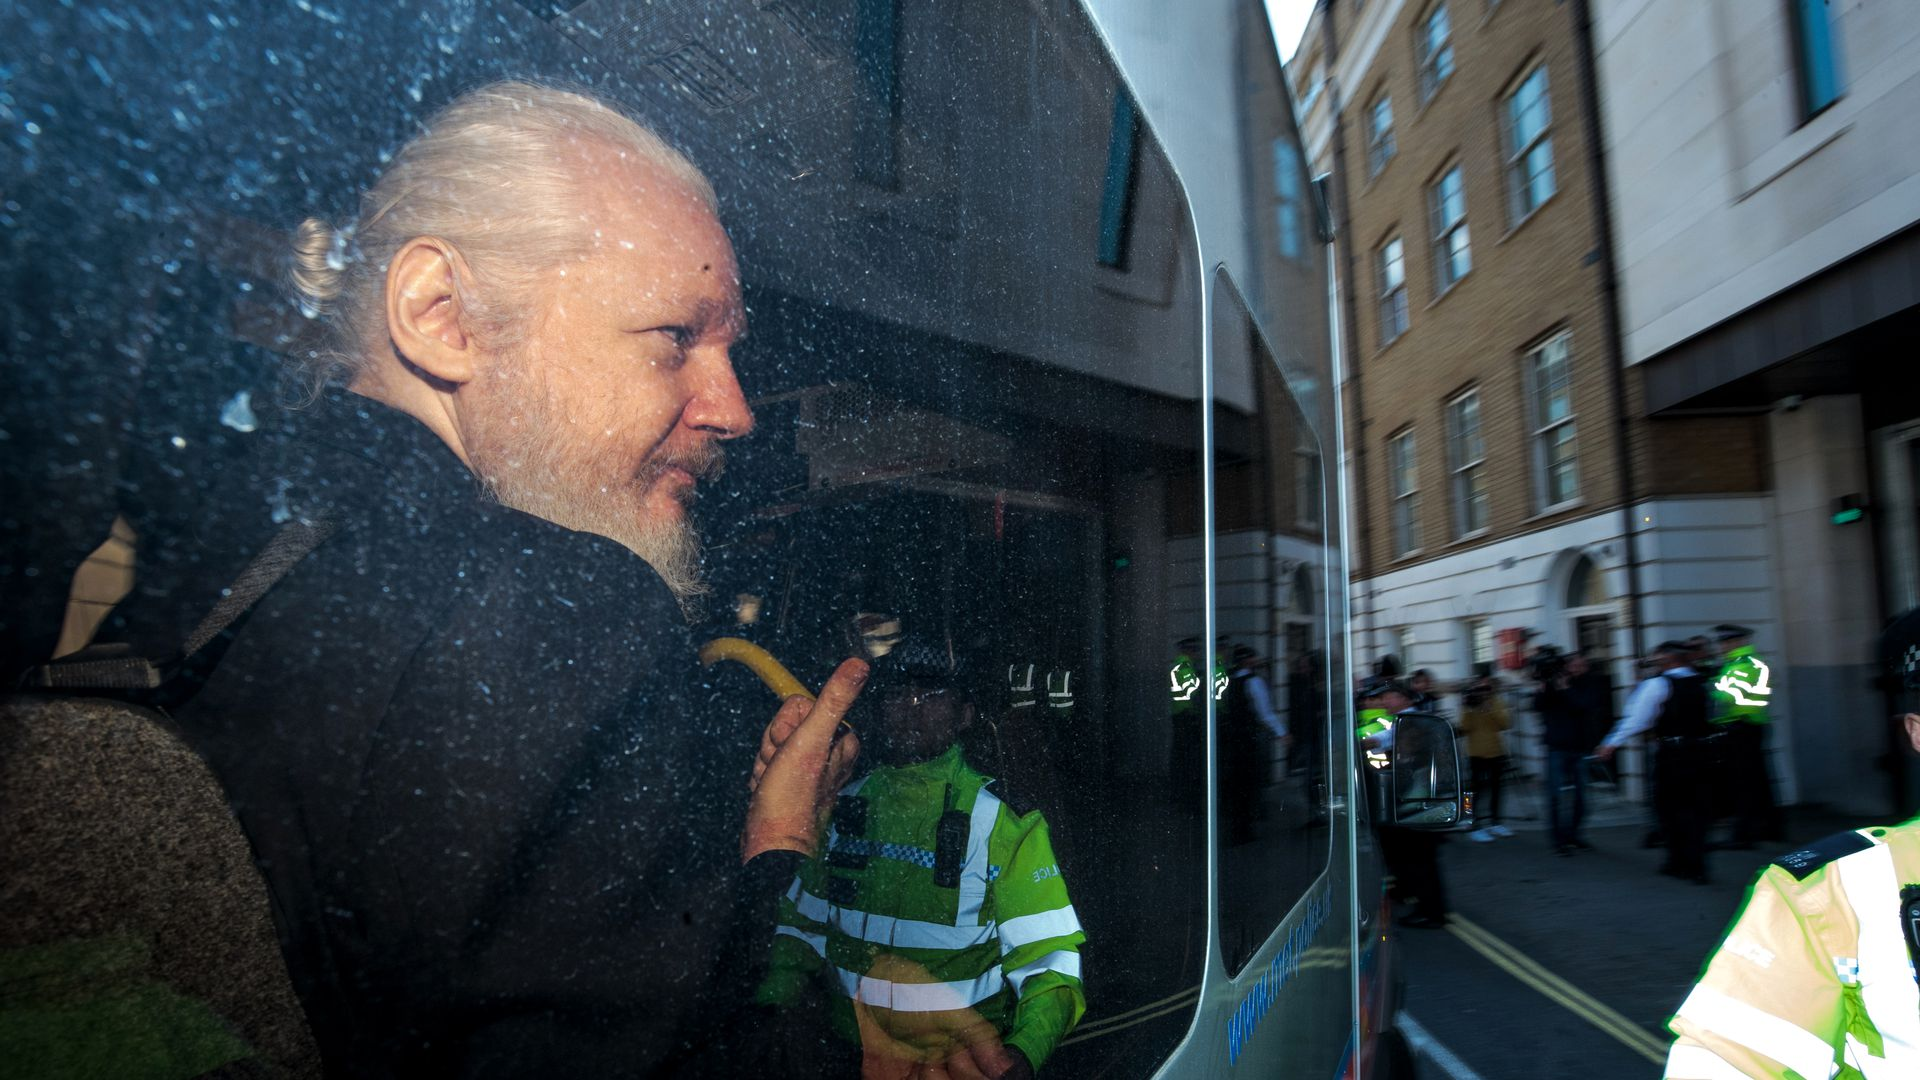 In this image, Julian Assange looks out a vehicle window.